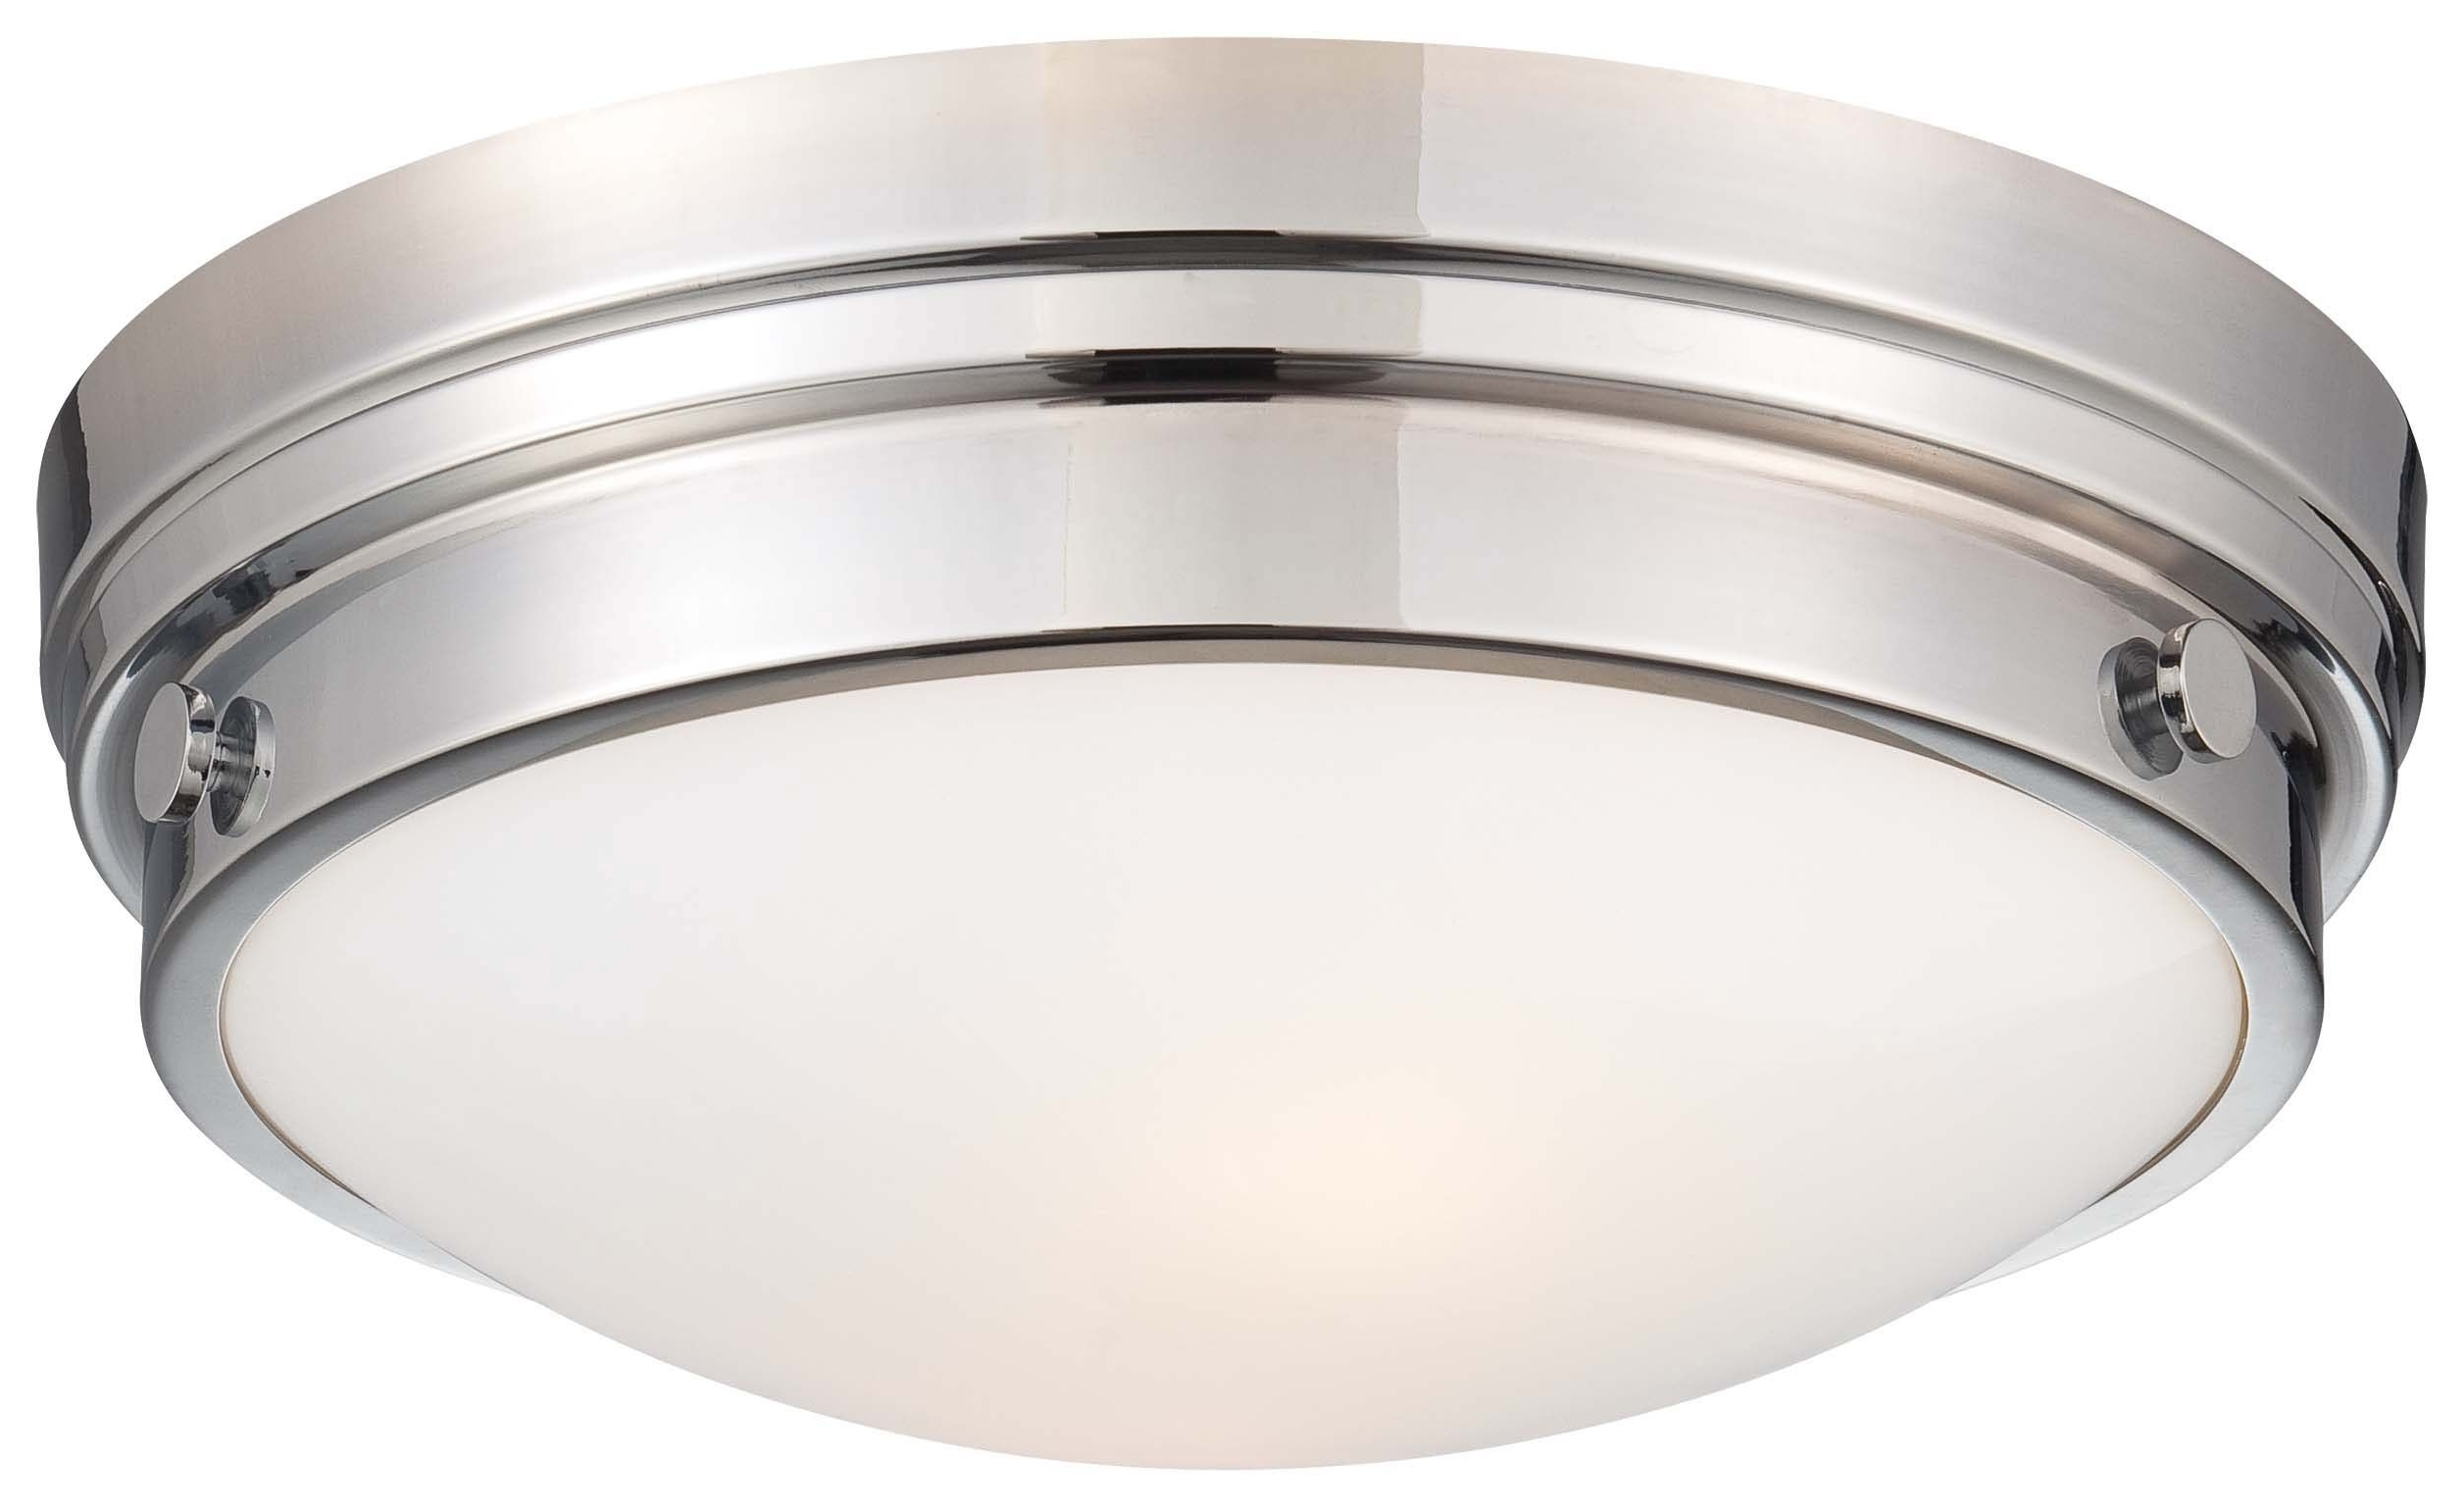 Light : Best Kitchen Light Fixtures Dining Room Lighting For In Best And Newest Commercial Outdoor Ceiling Lighting Fixtures (Gallery 9 of 20)